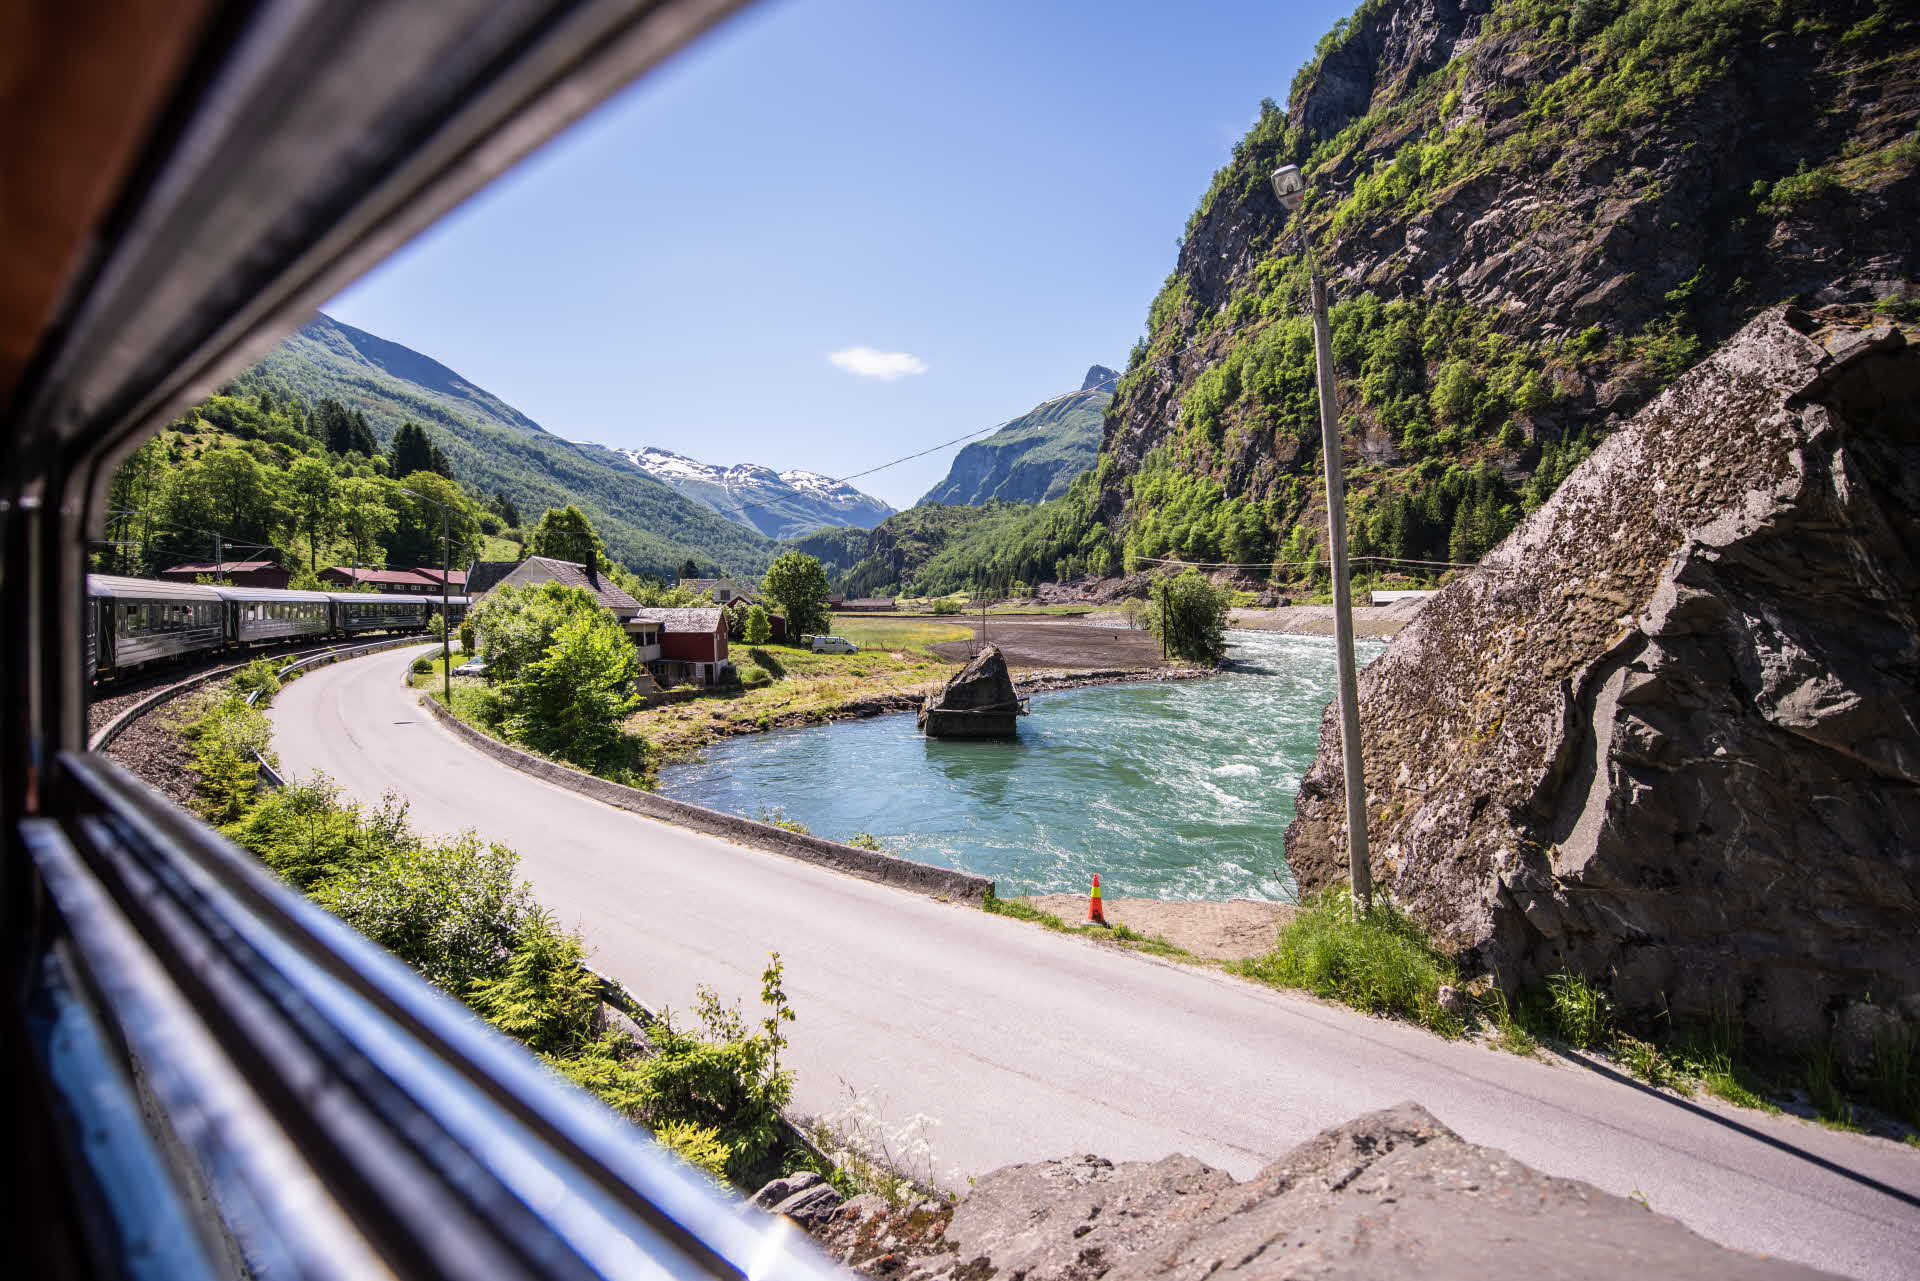 The river and Rallarvegen in Flåmsdalen, viewed from the Flåm Railway